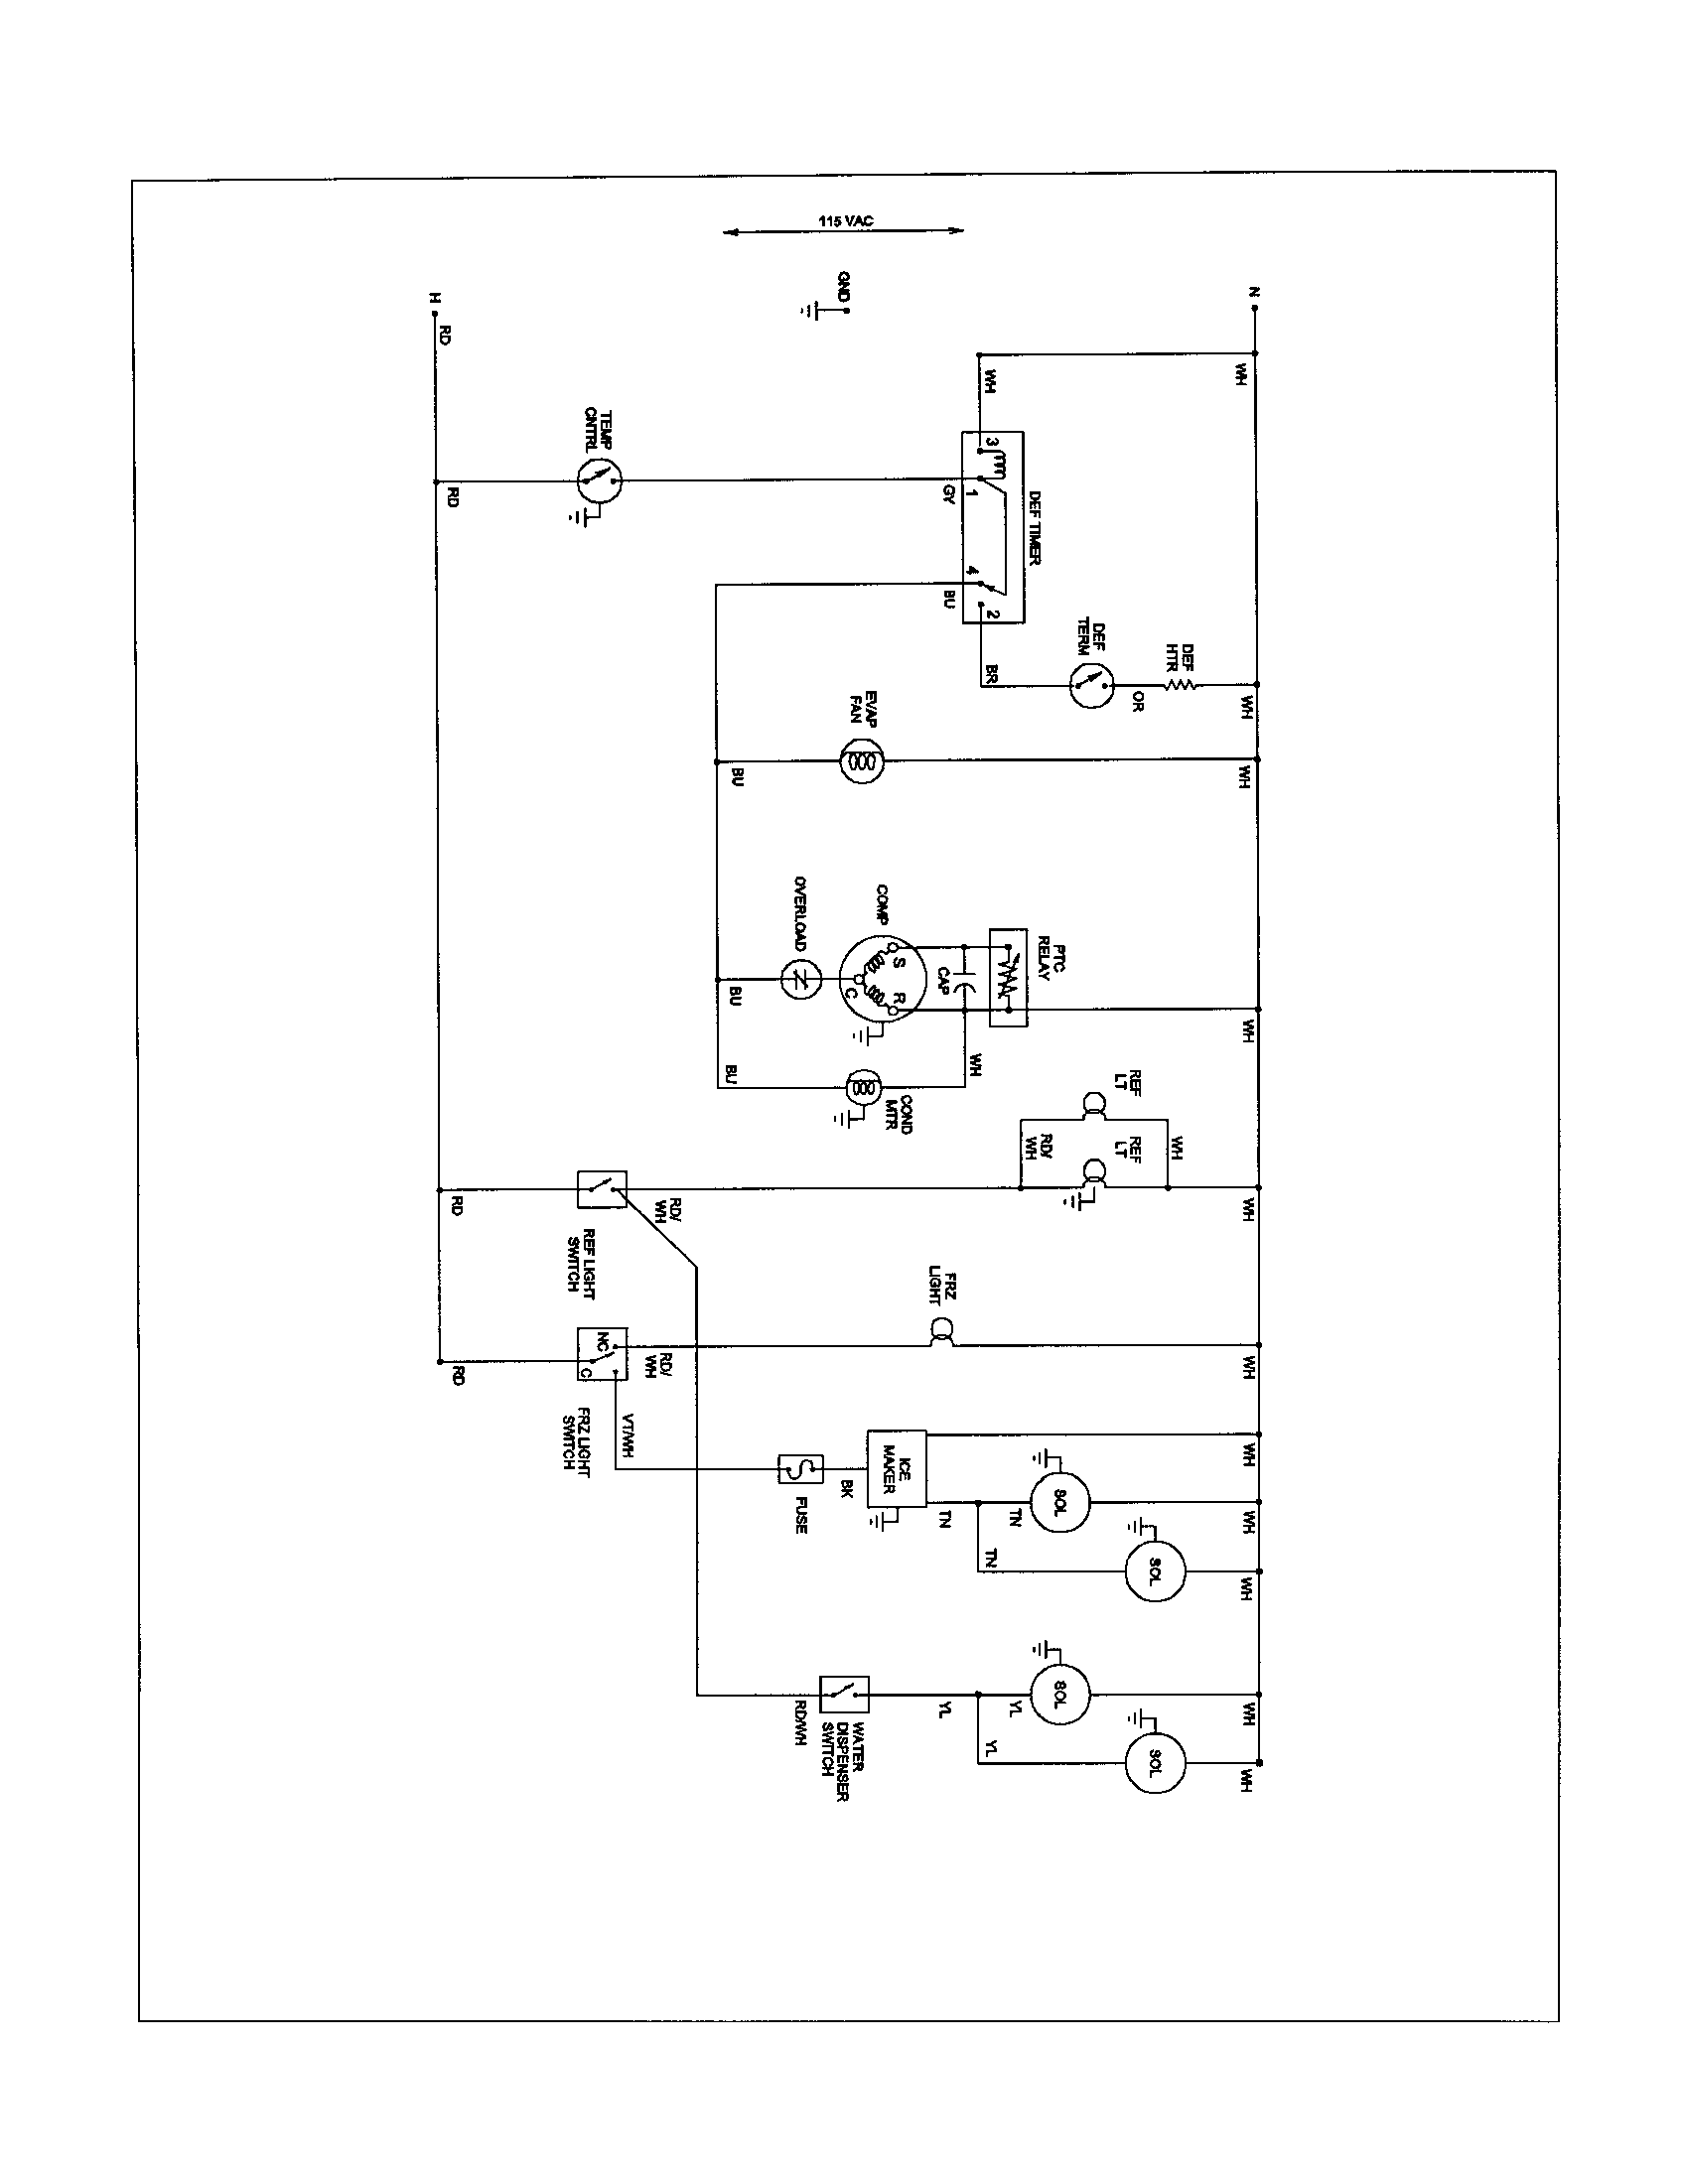 New Wiring Diagram Ice Maker Diagrams Digramssample Diagramimages Wiringdiagramsample Wiringdiagram Check More At Https Nostoc Co W Diagram Wire Bazooka